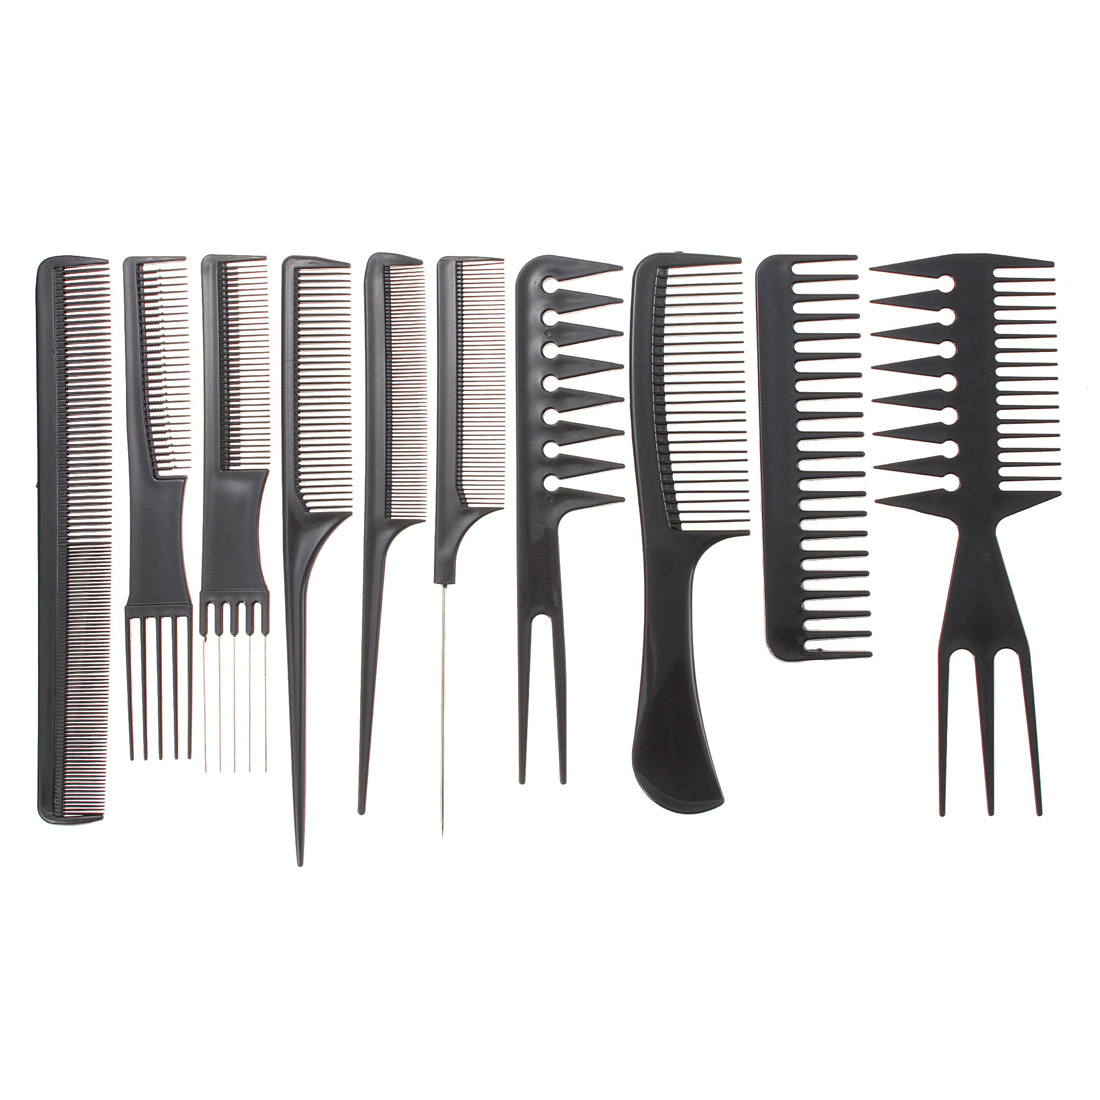 hair comb style professional salon hair styling hairdressing plastic combs 5025 | 20120916133639578